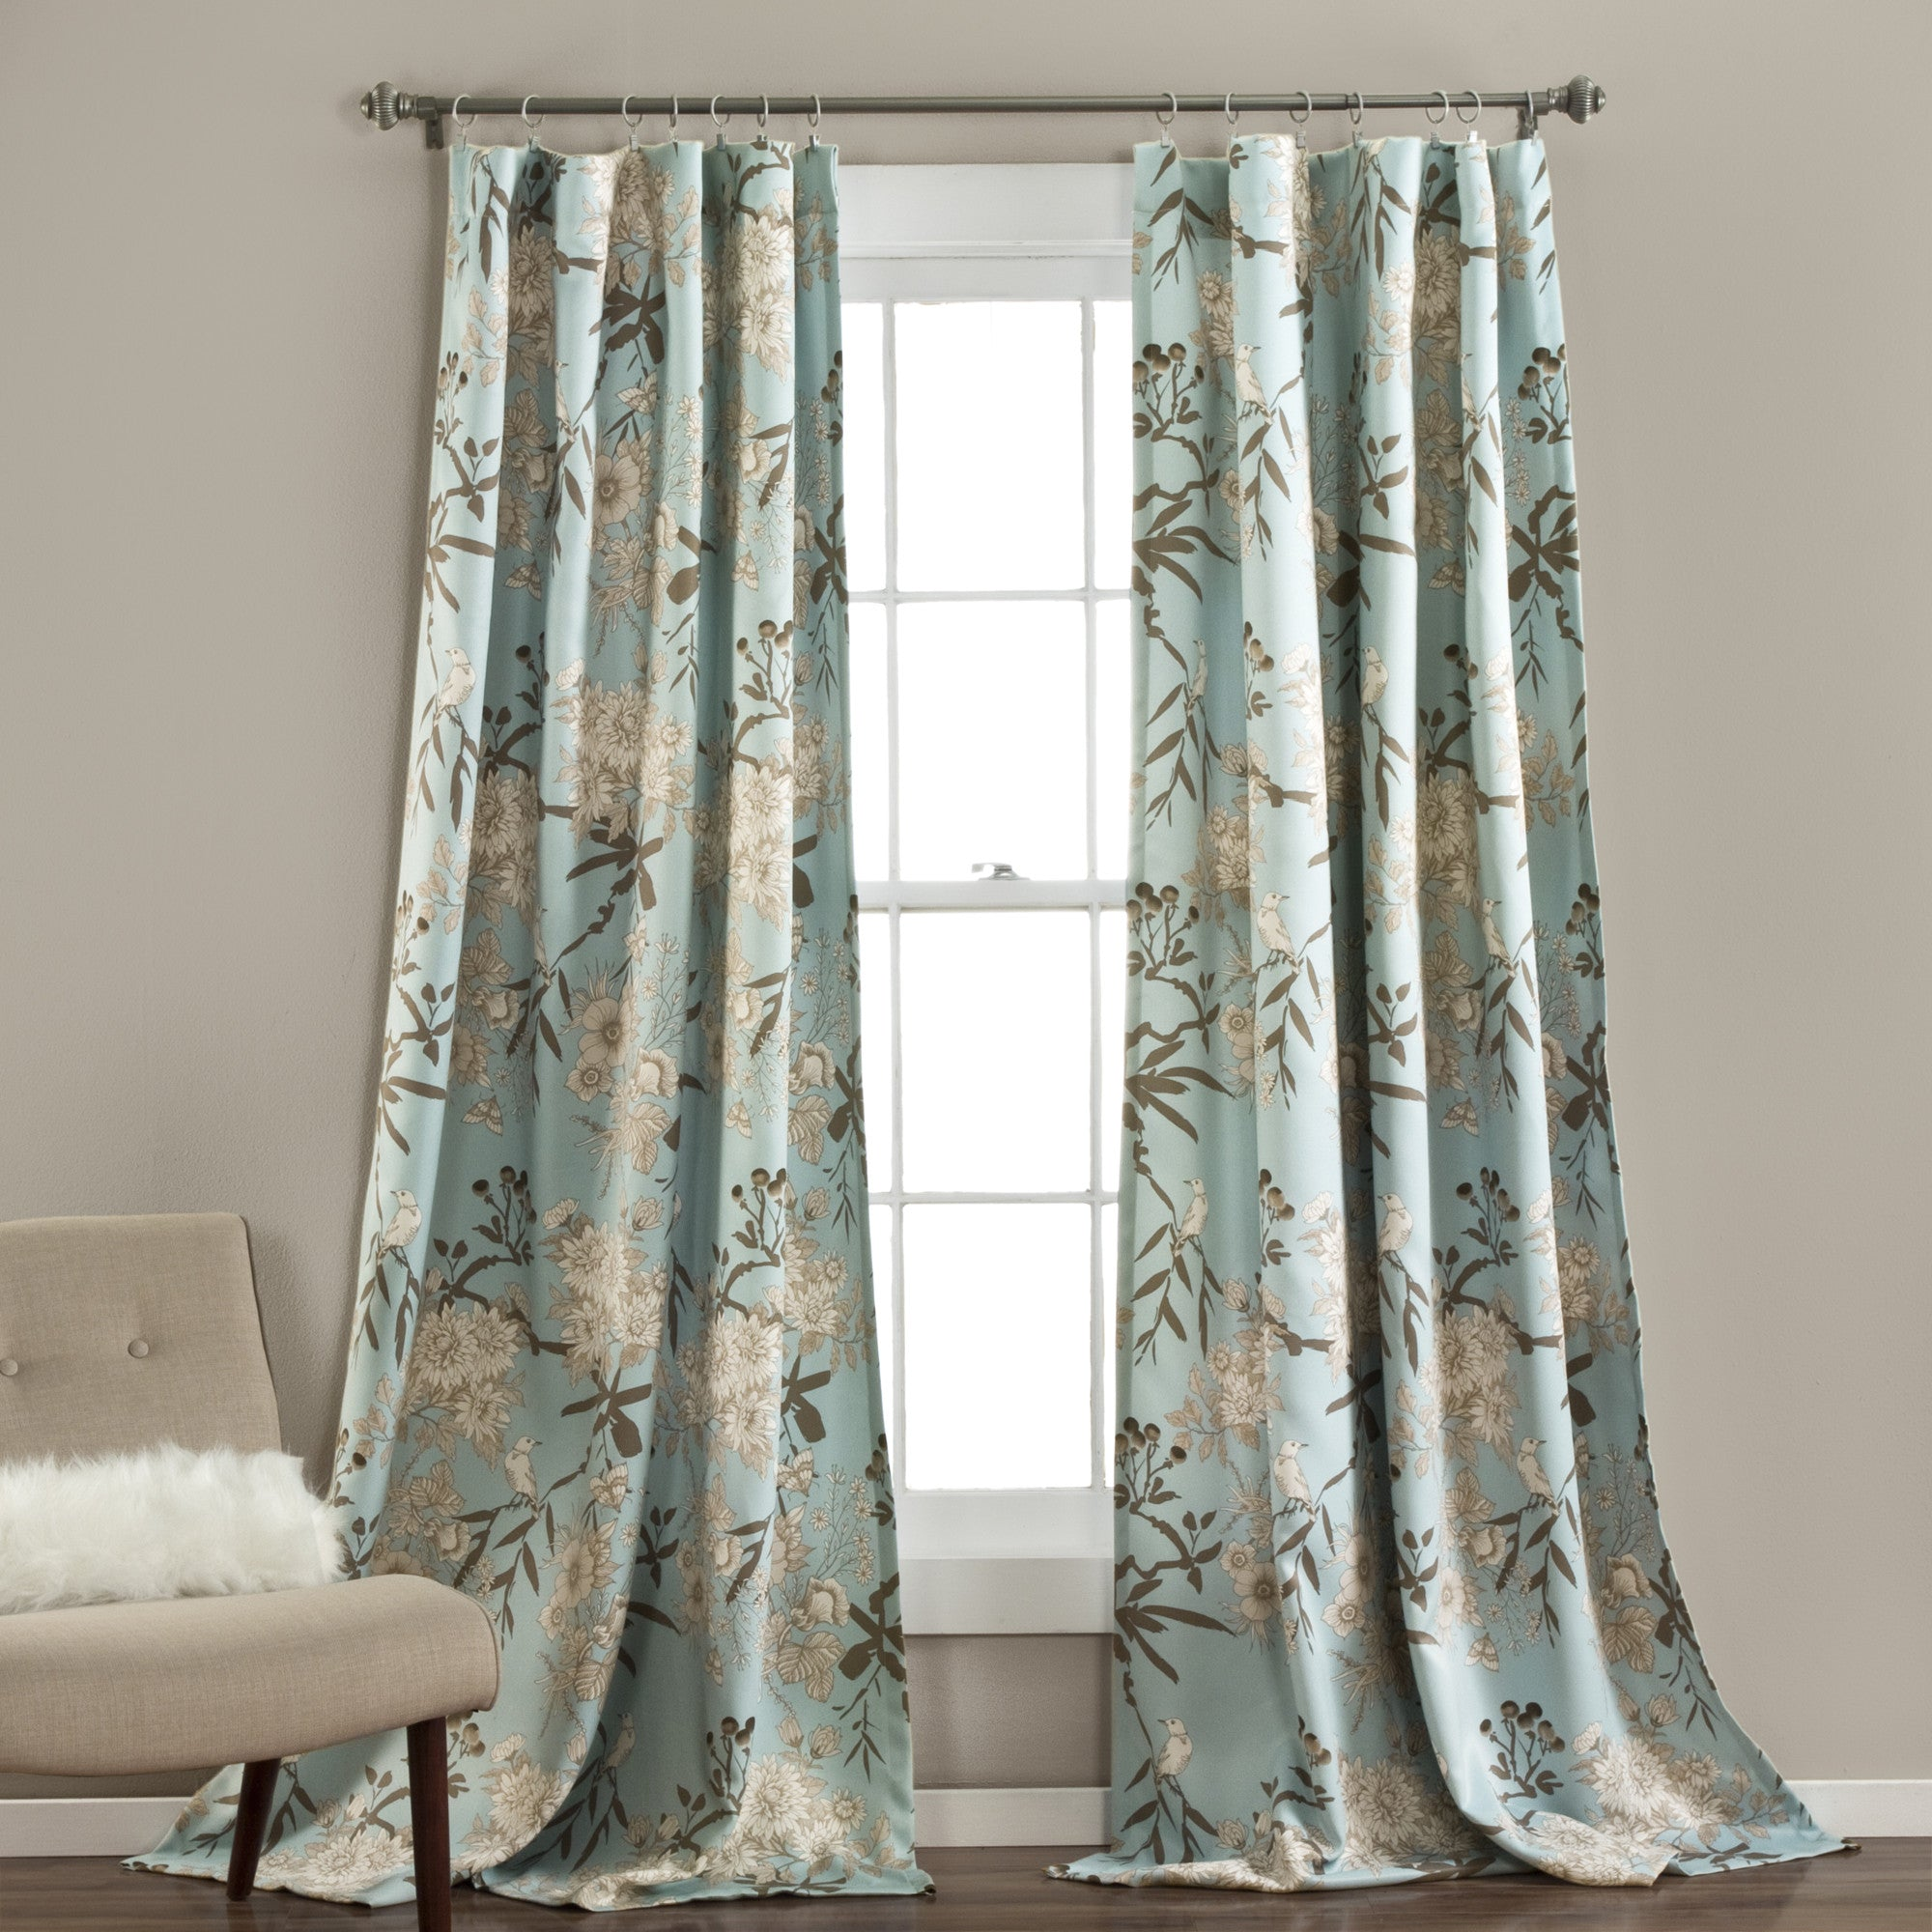 cm in teal or textilefamily curtain flower product garden polyester curtains white window lace width for girl beautiful big from